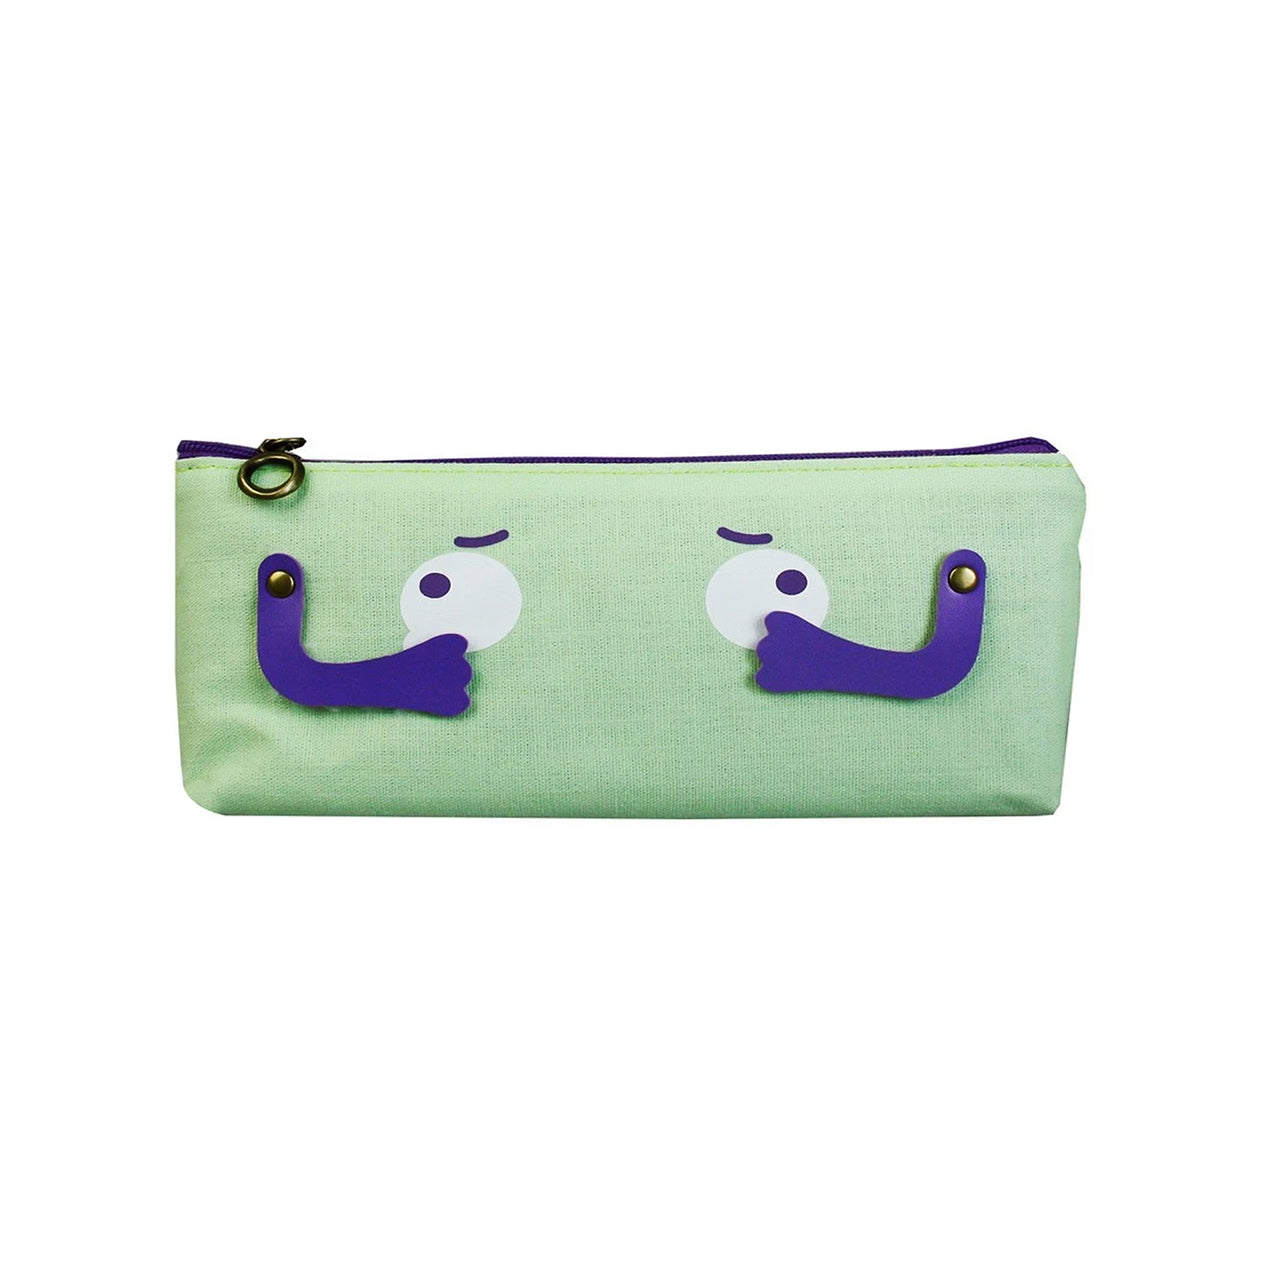 Eyes Fabric Pencil Case - Light Green